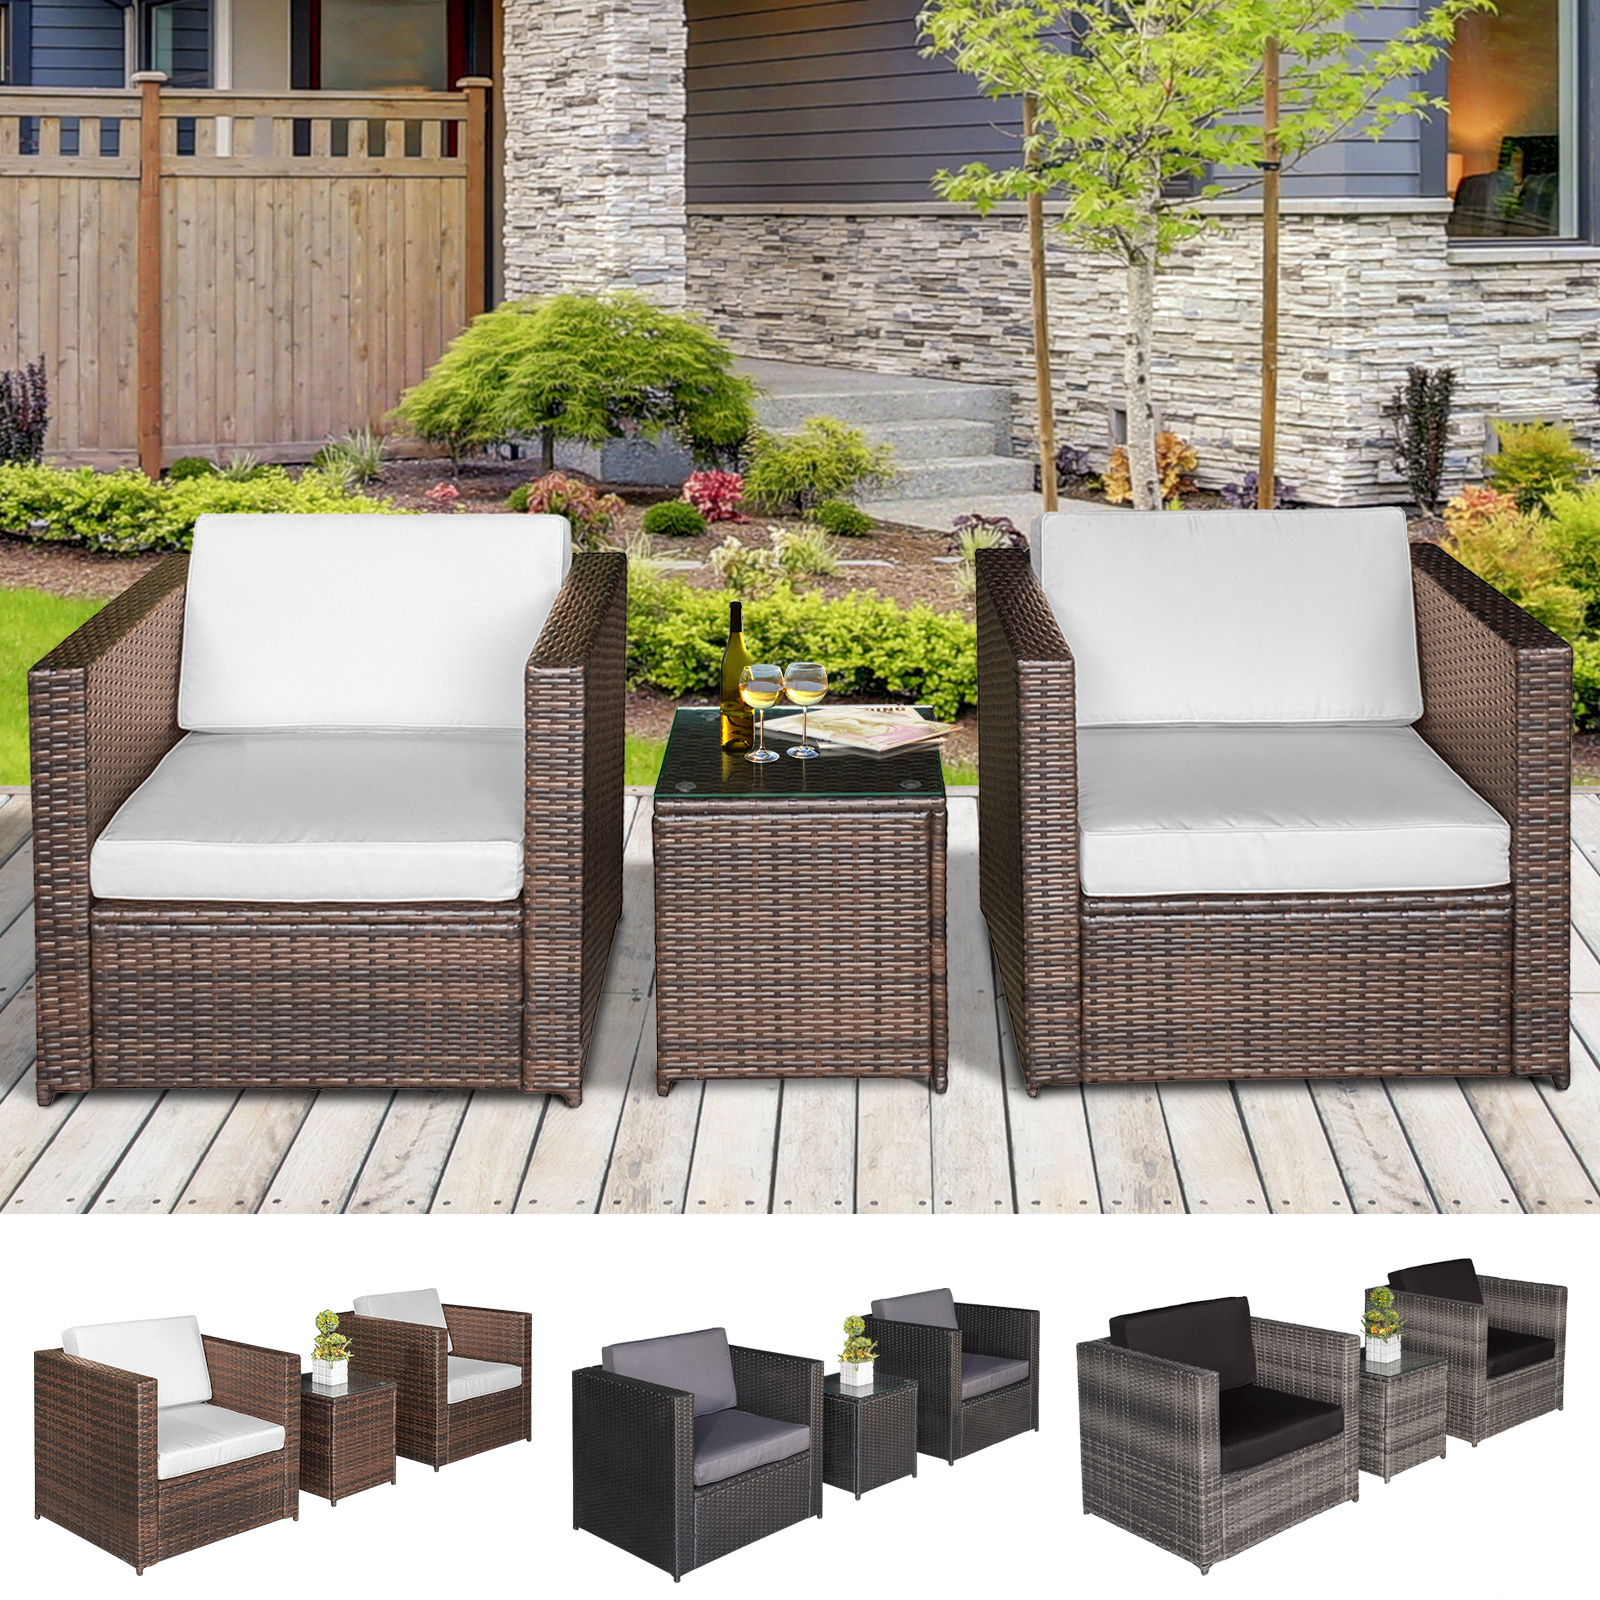 Garden Sofa Two Seater Details About 3pcs Patio 2 Seater Rattan Sofa Garden Furniture Set Table W Cushions